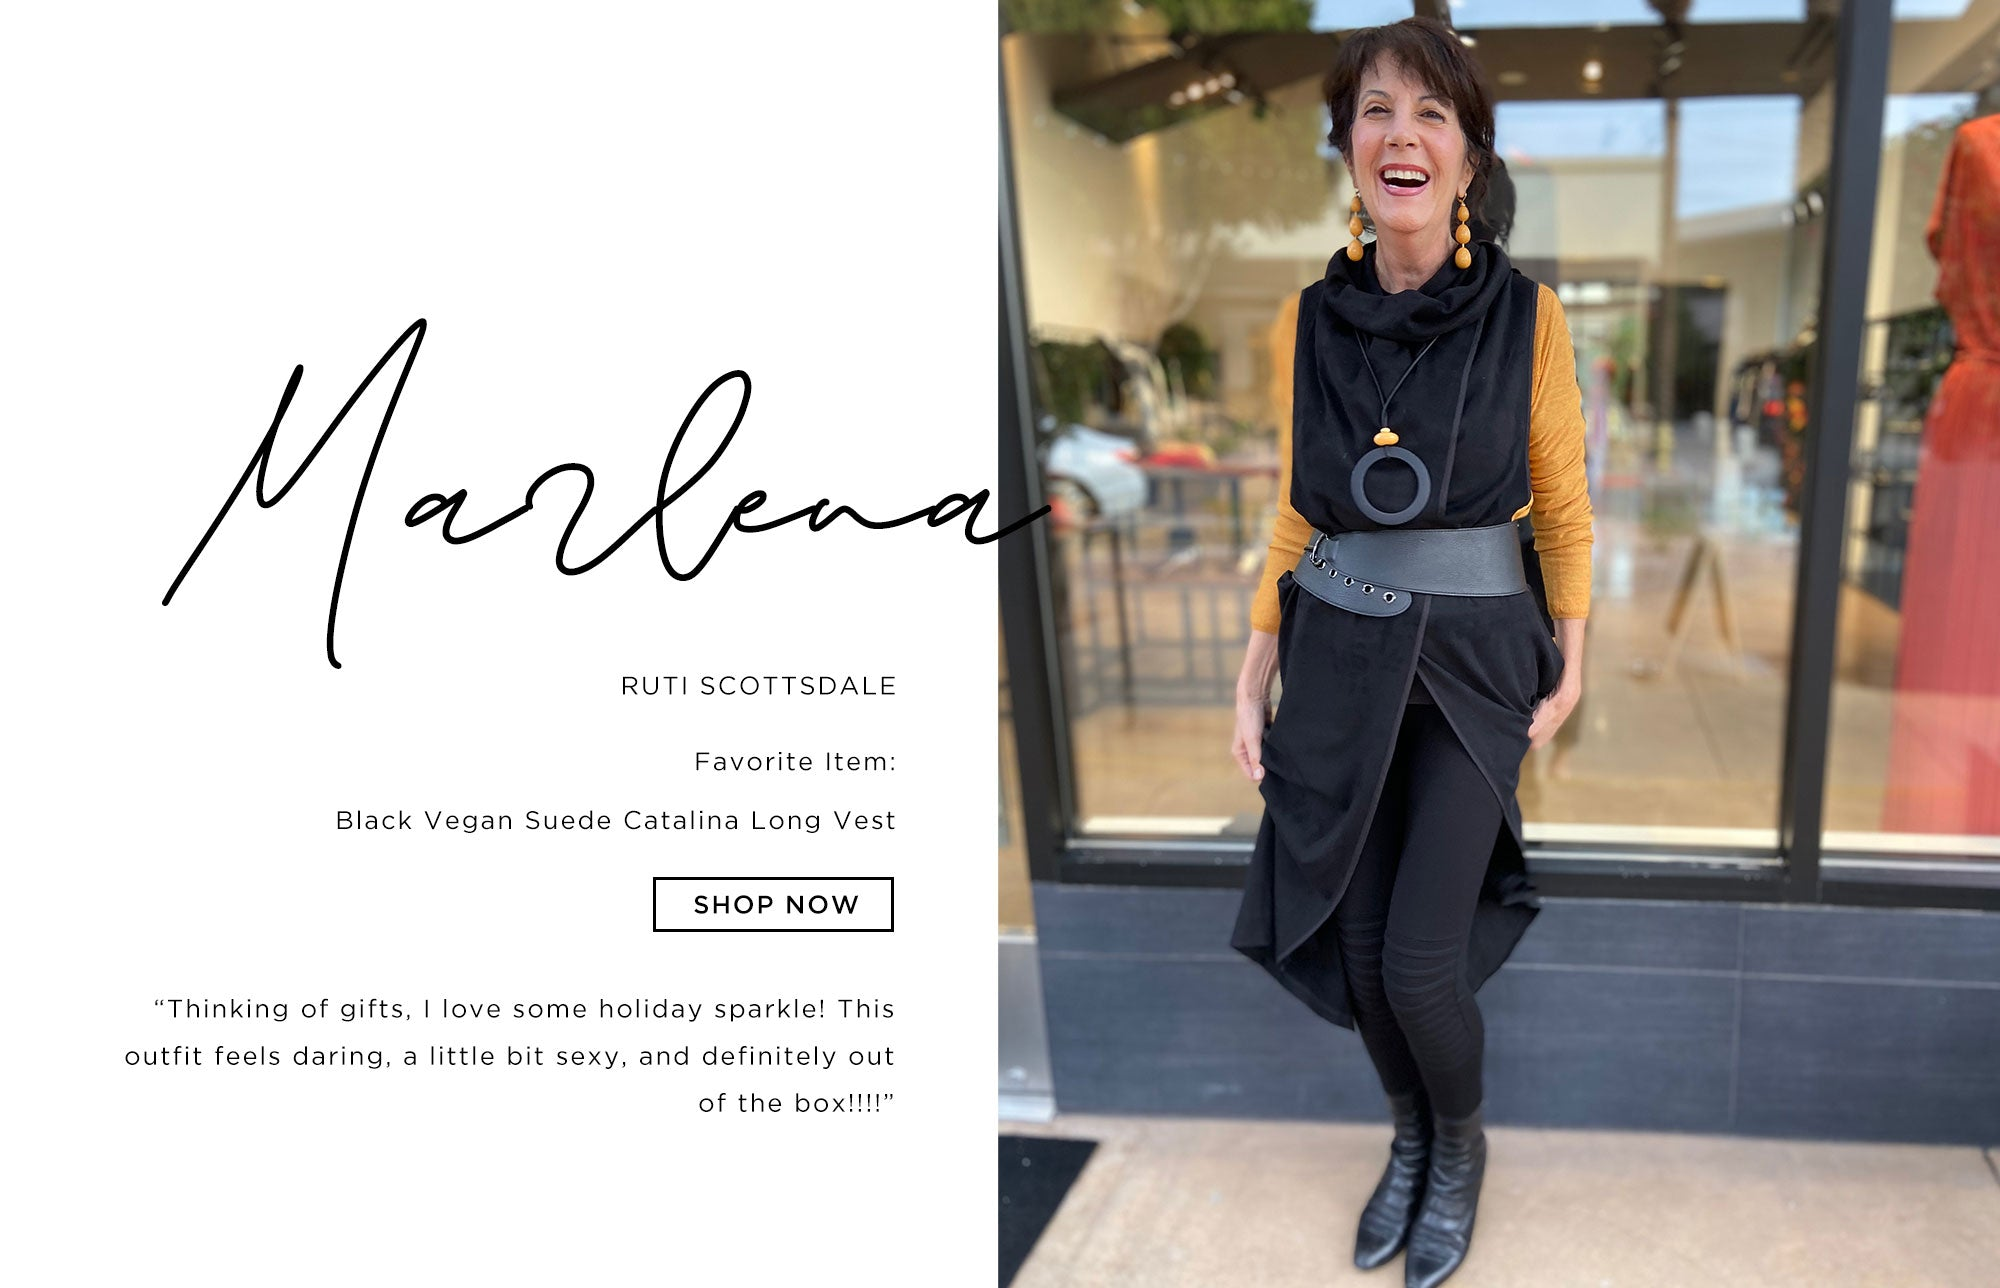 Marlena Ruti Scottsdale   Thinking of gifts, I love some holiday sparkle! This outfit feels daring, a little bit sexy, and definitely out of the box!!!!